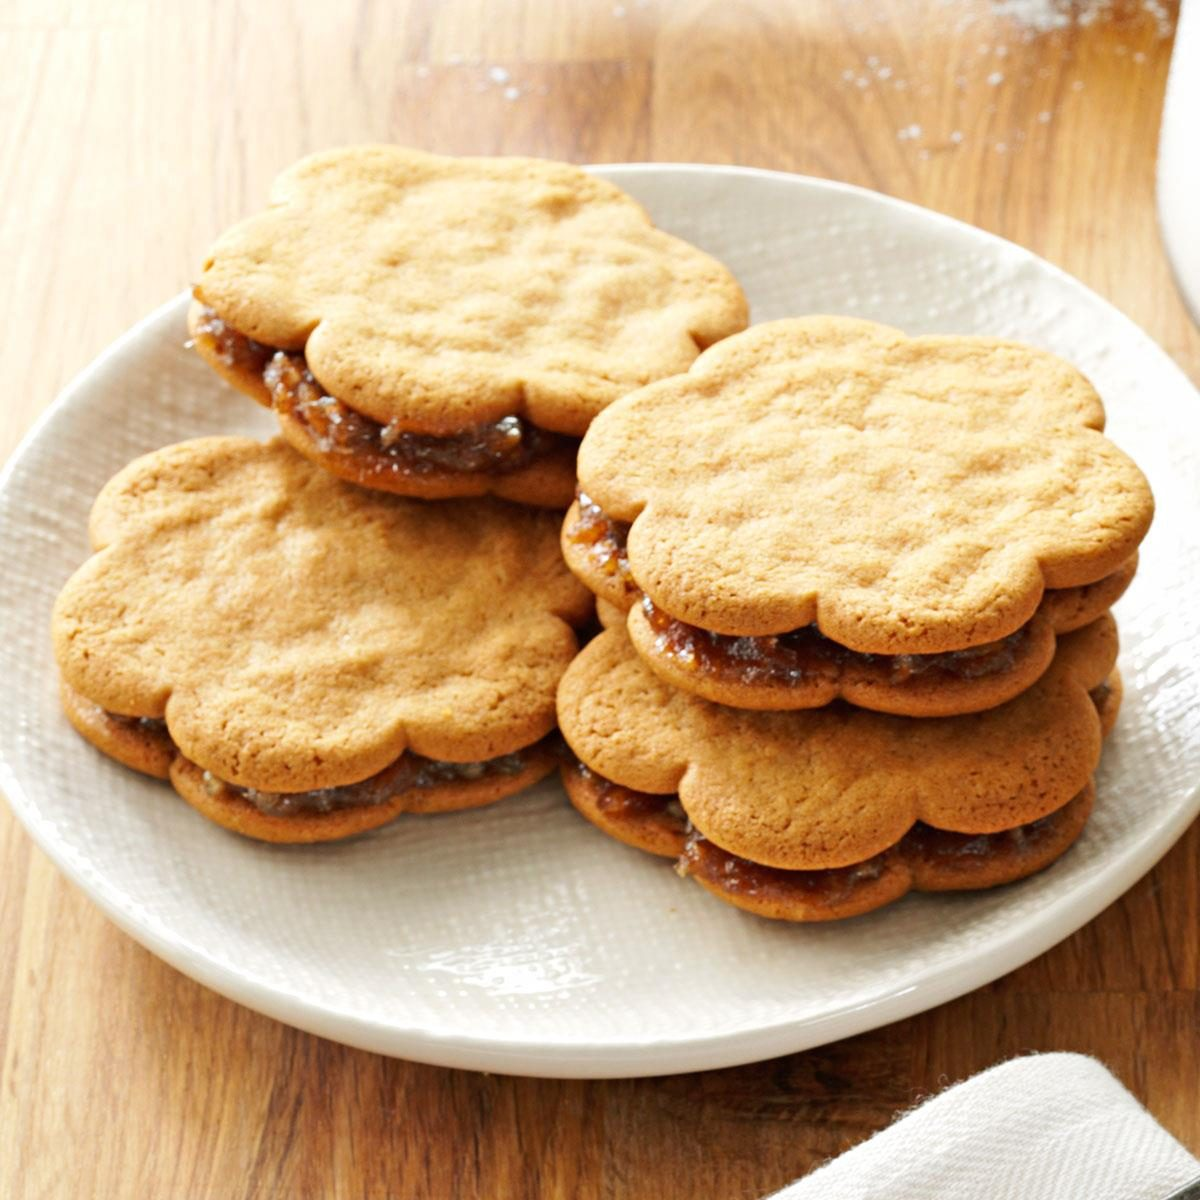 Date-Filled Sandwich Cookies